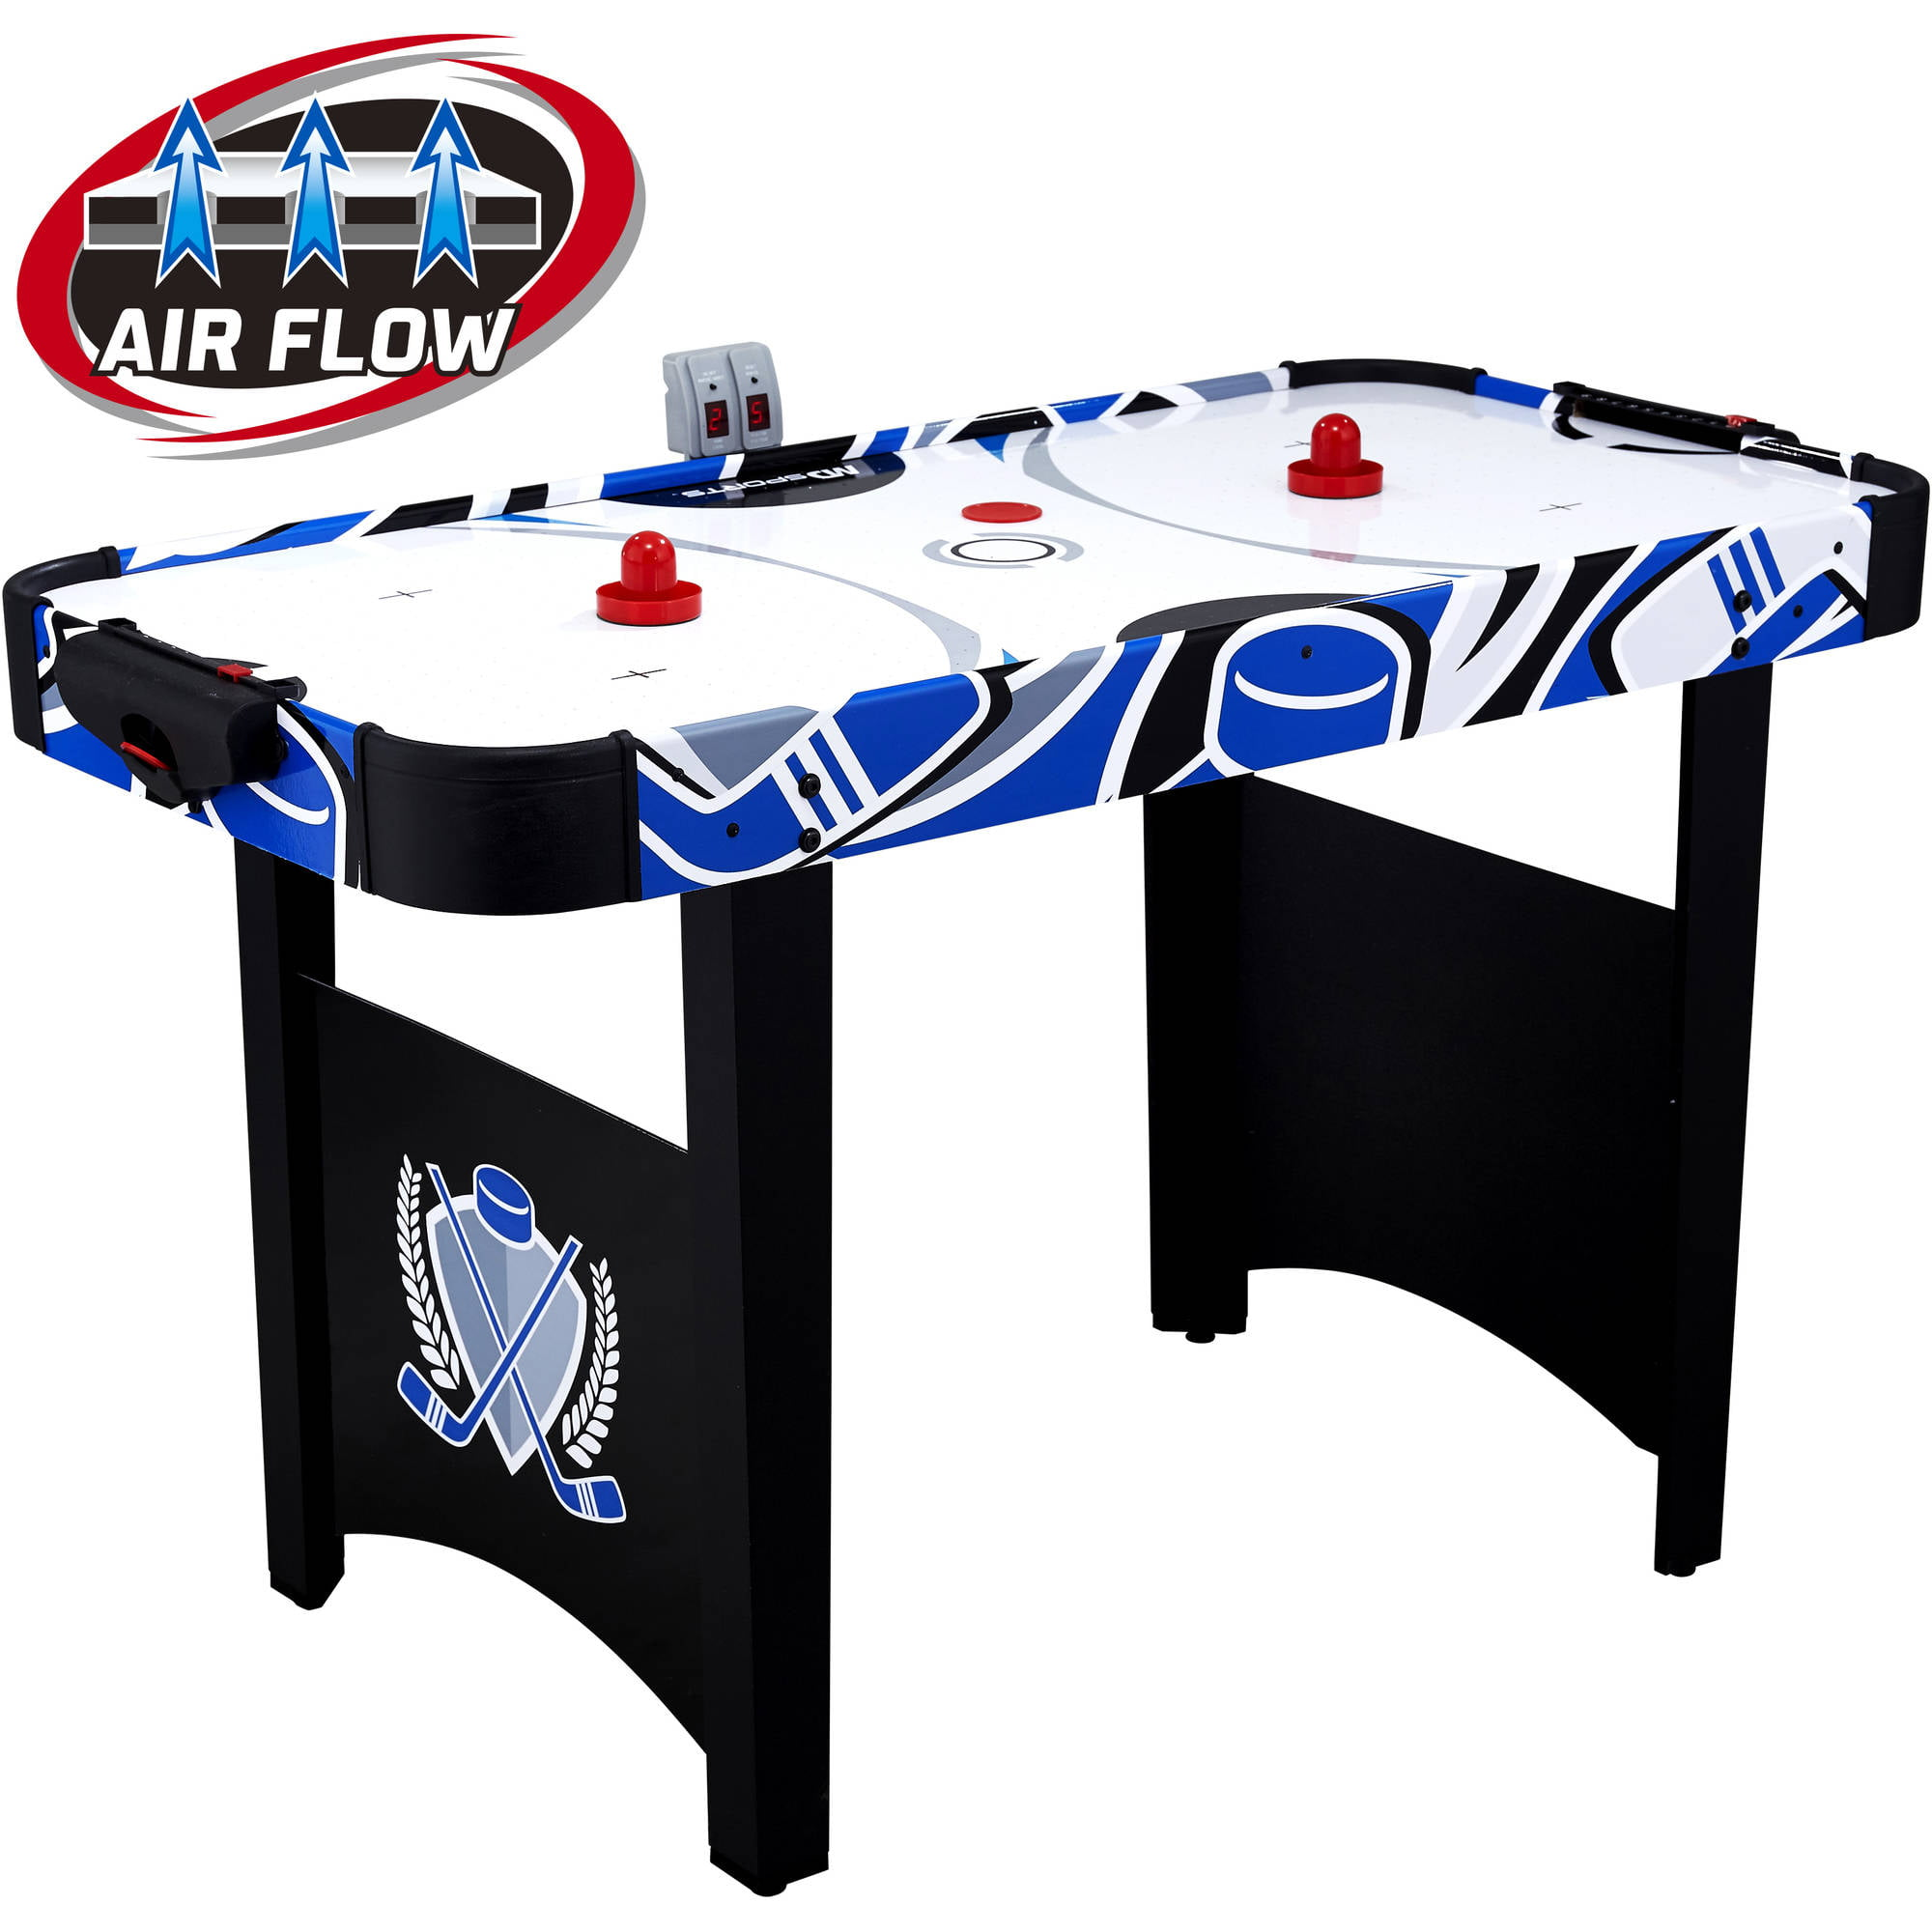 Hathaway Midtown 6 Foot Air Hockey Family Game Table With Electronic  Scoring, High Powered Blower, Cherry Wood Tone, Strikers And Pucks    Walmart.com